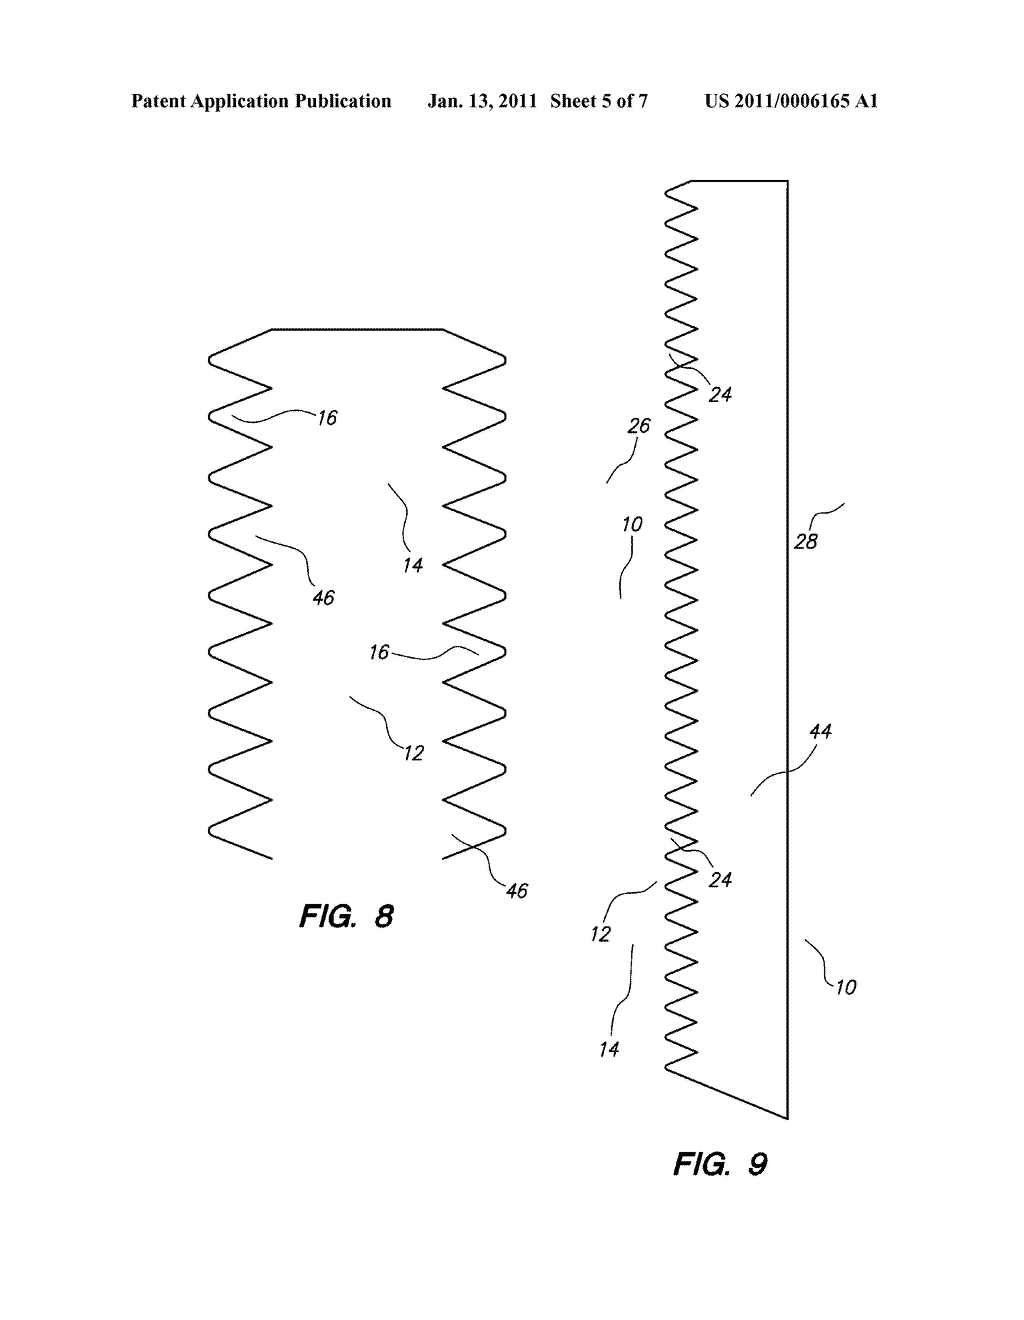 APPLICATION OF CONFORMAL SUB BOUNDARY LAYER VORTEX